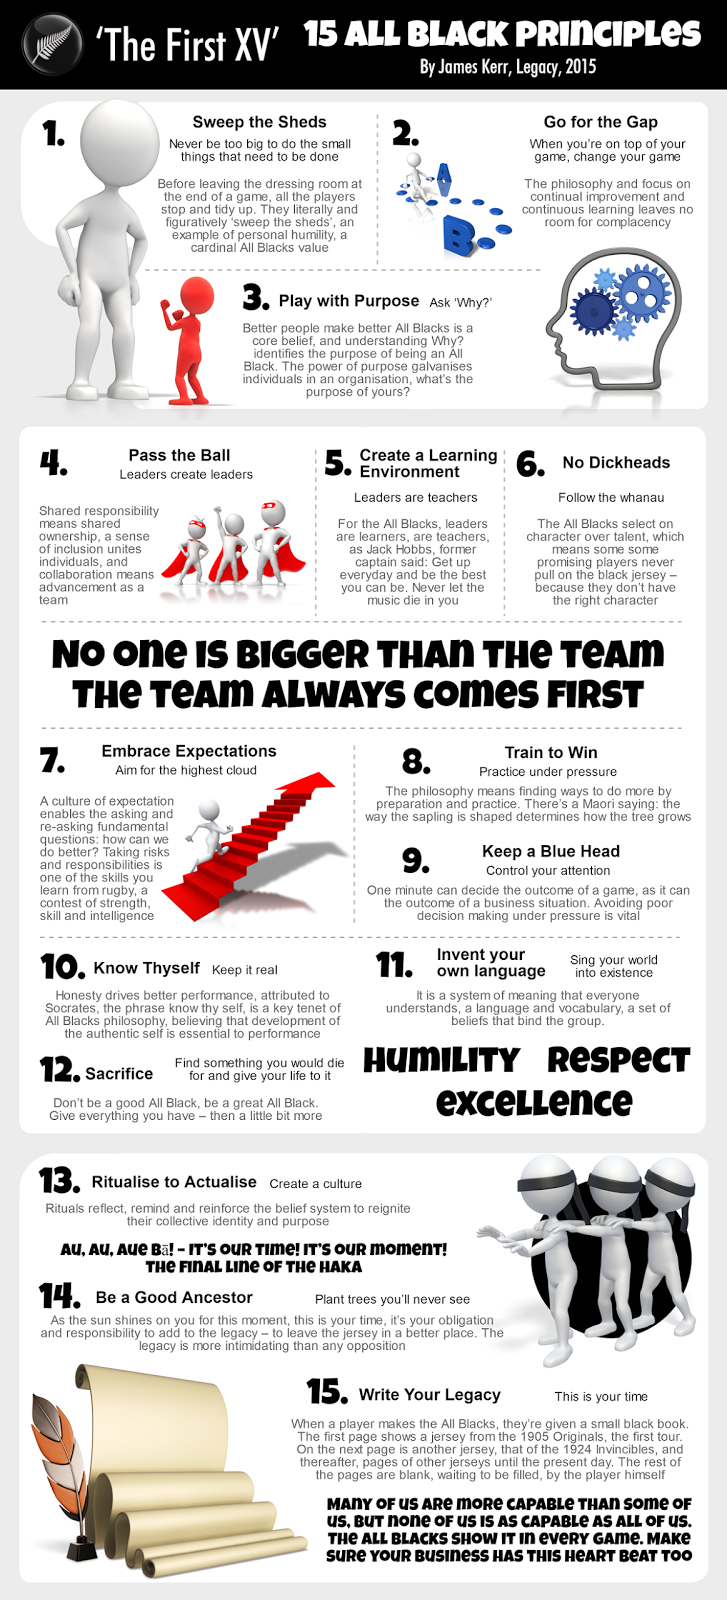 The First Xv 15 All Black Principles How Culture Inspires And